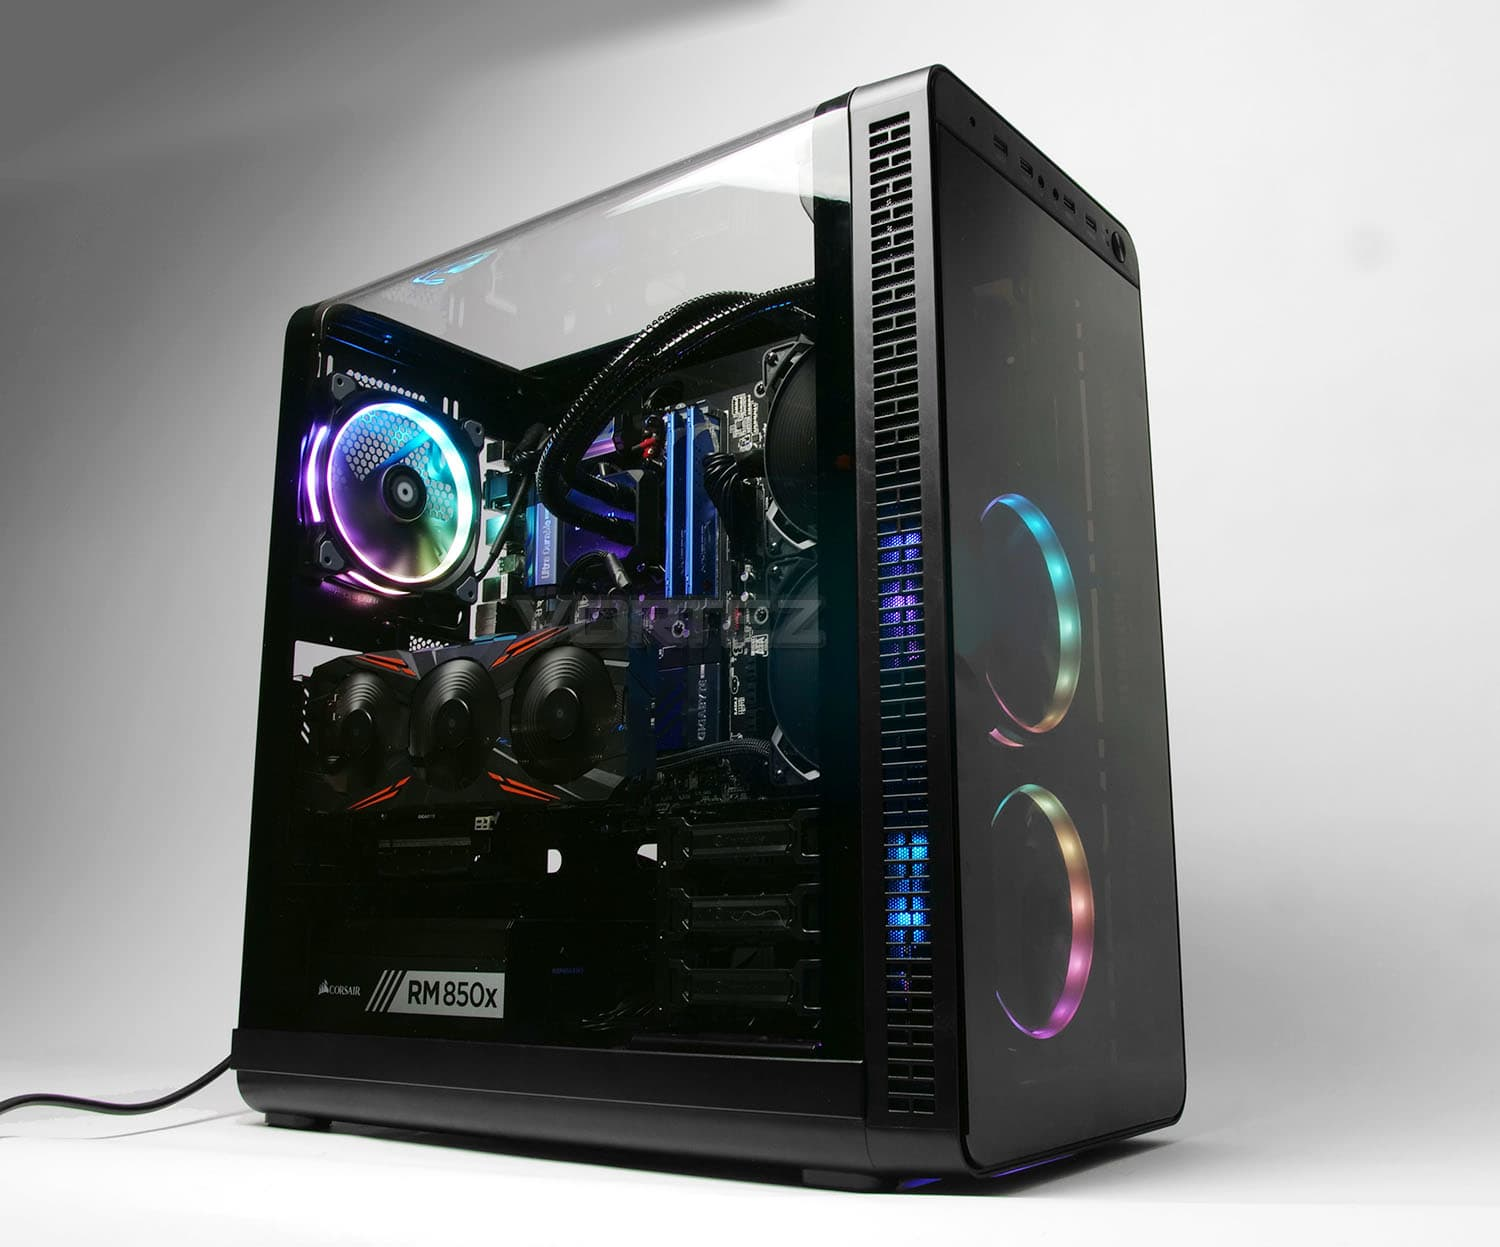 Unique curved acrylic side panel in the Tt View 37 case.